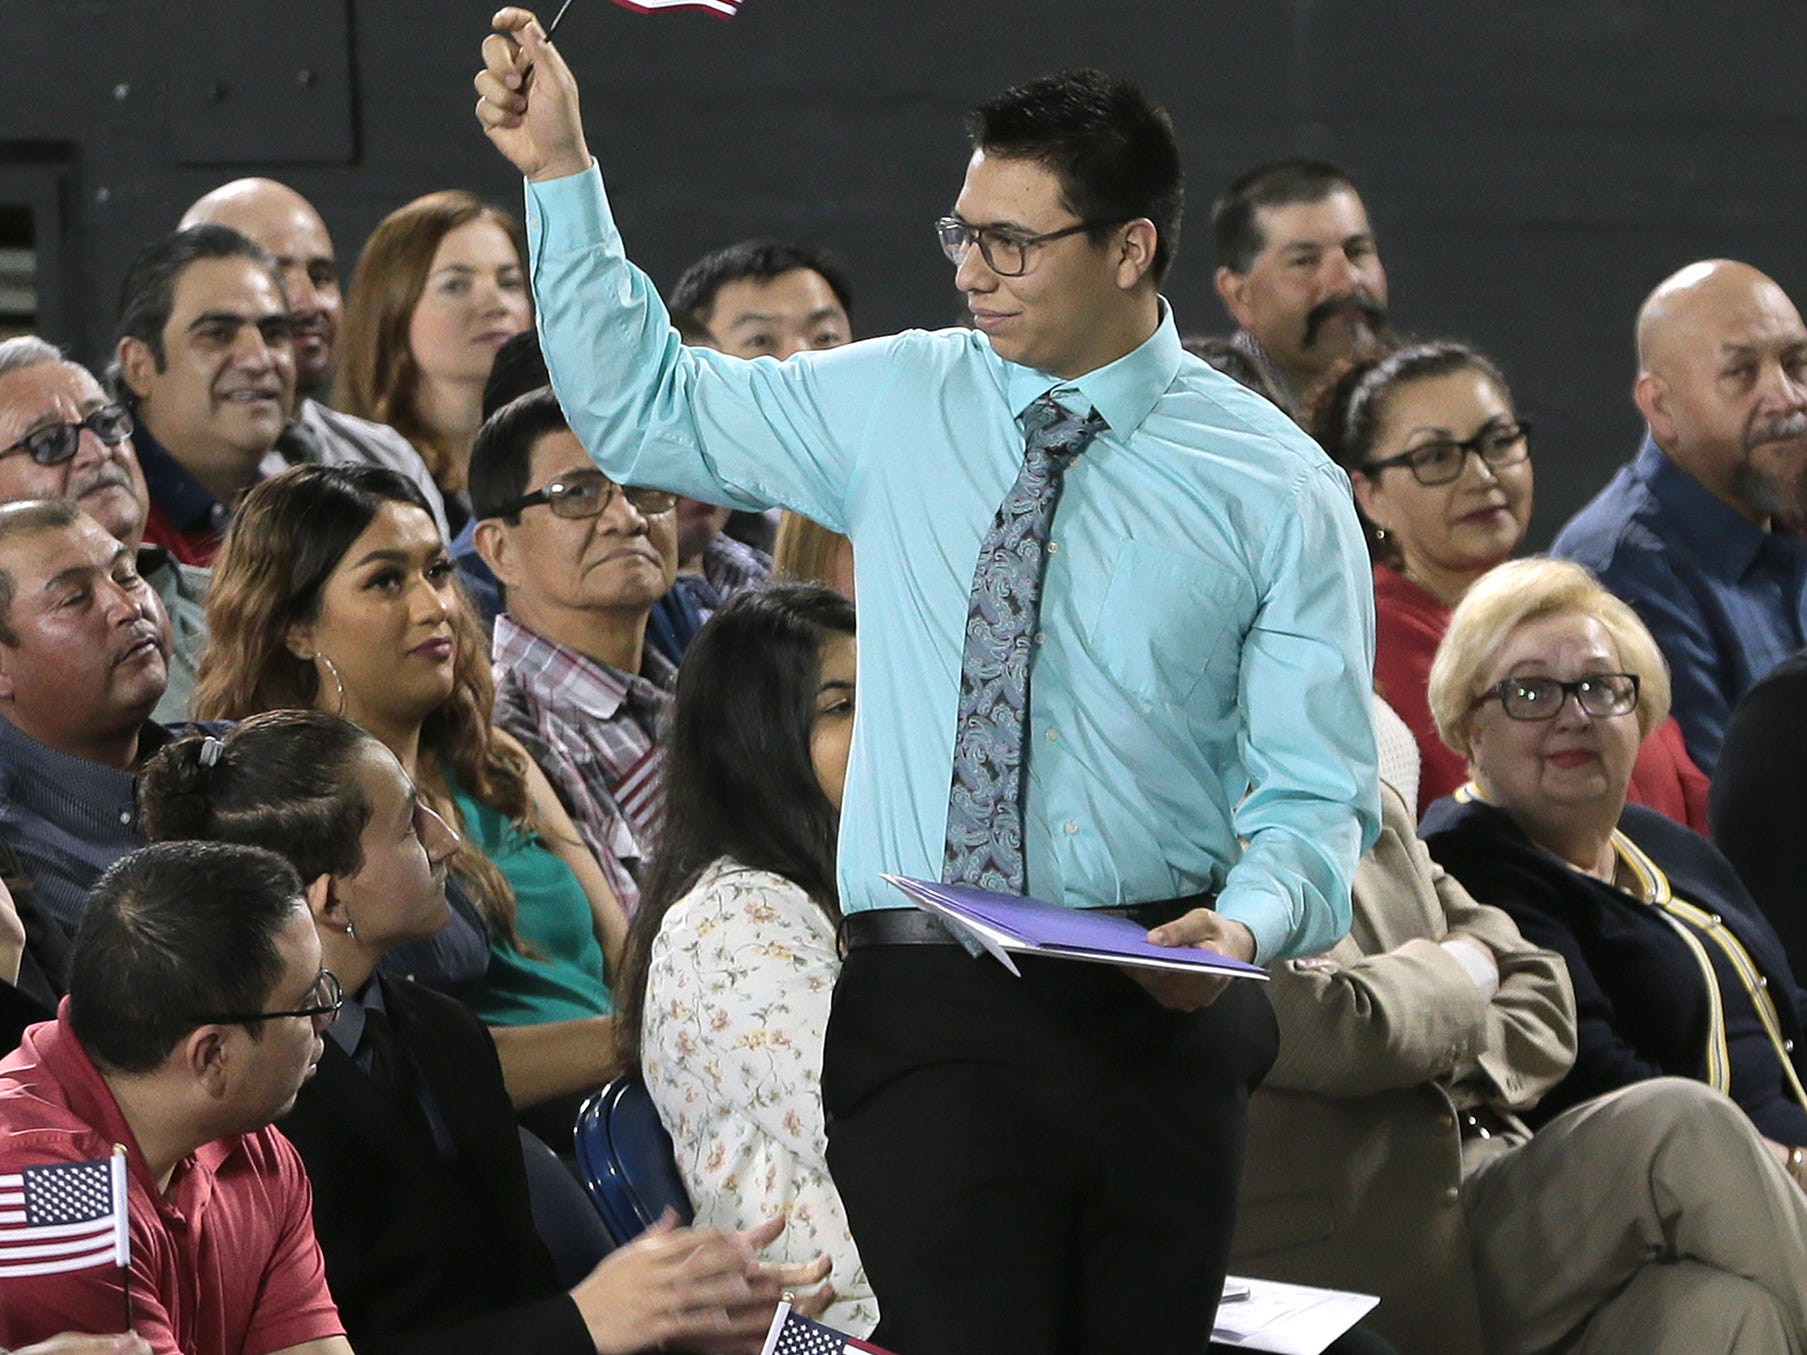 Miguel Perez was the youngest to receive his citizenship Thursday at a ceremony for 740 new citizens.